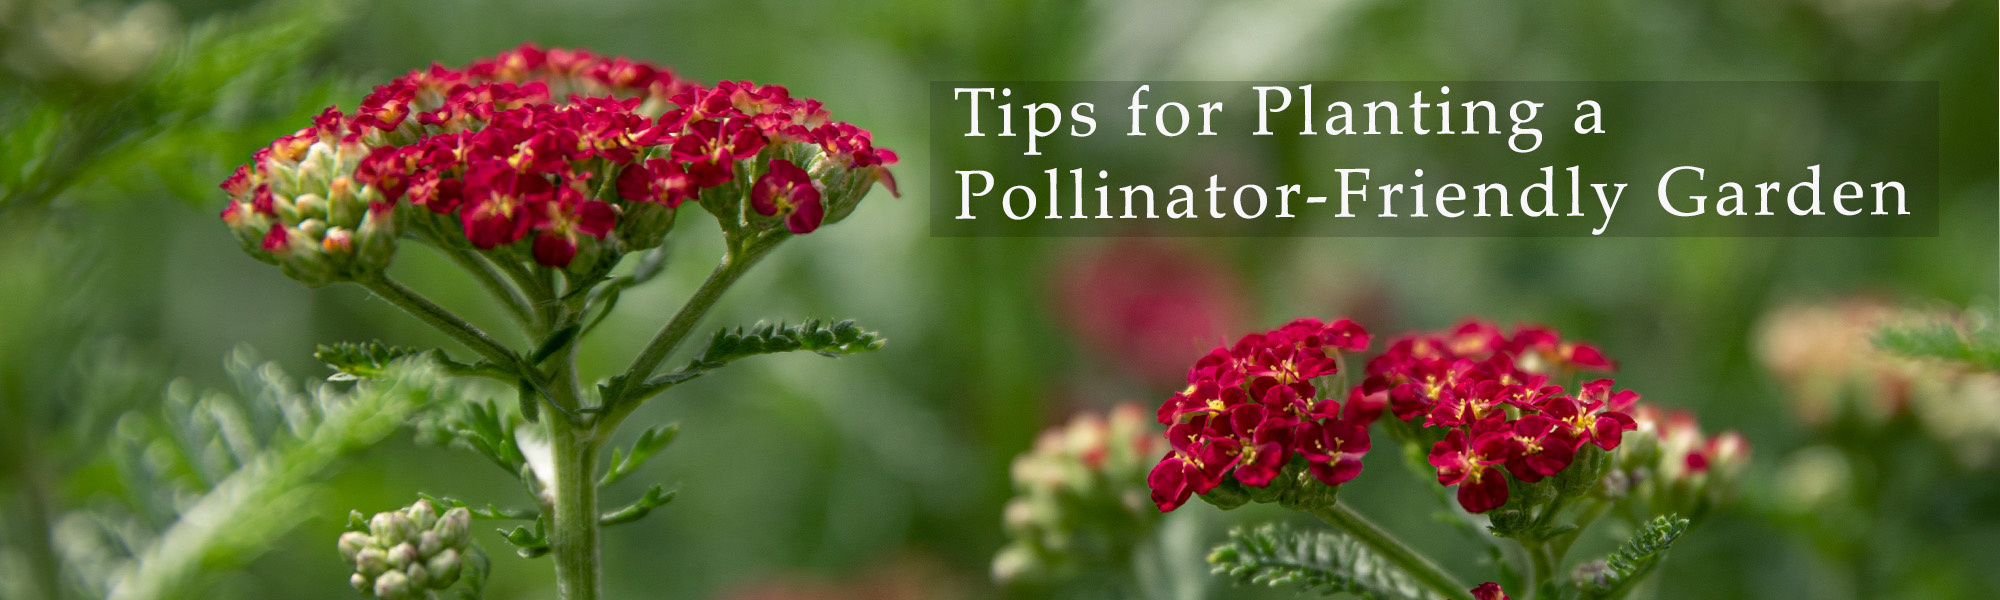 Tips for Planting a Pollinator-friendly garden Tennessee